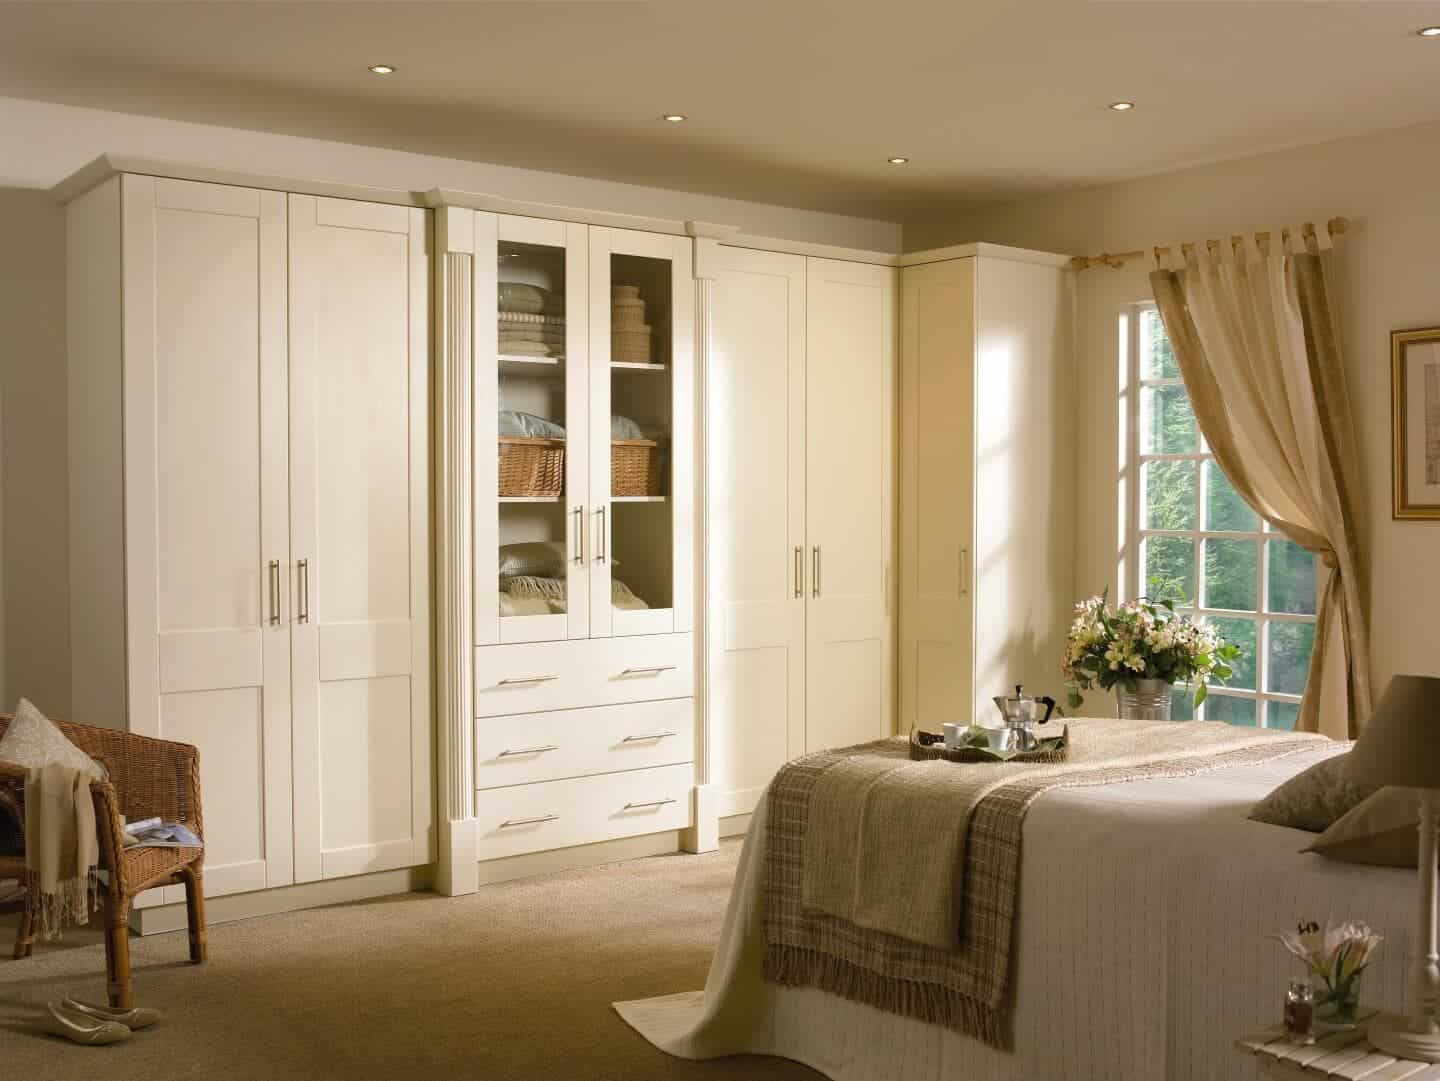 white bedrooom with two closets and bed